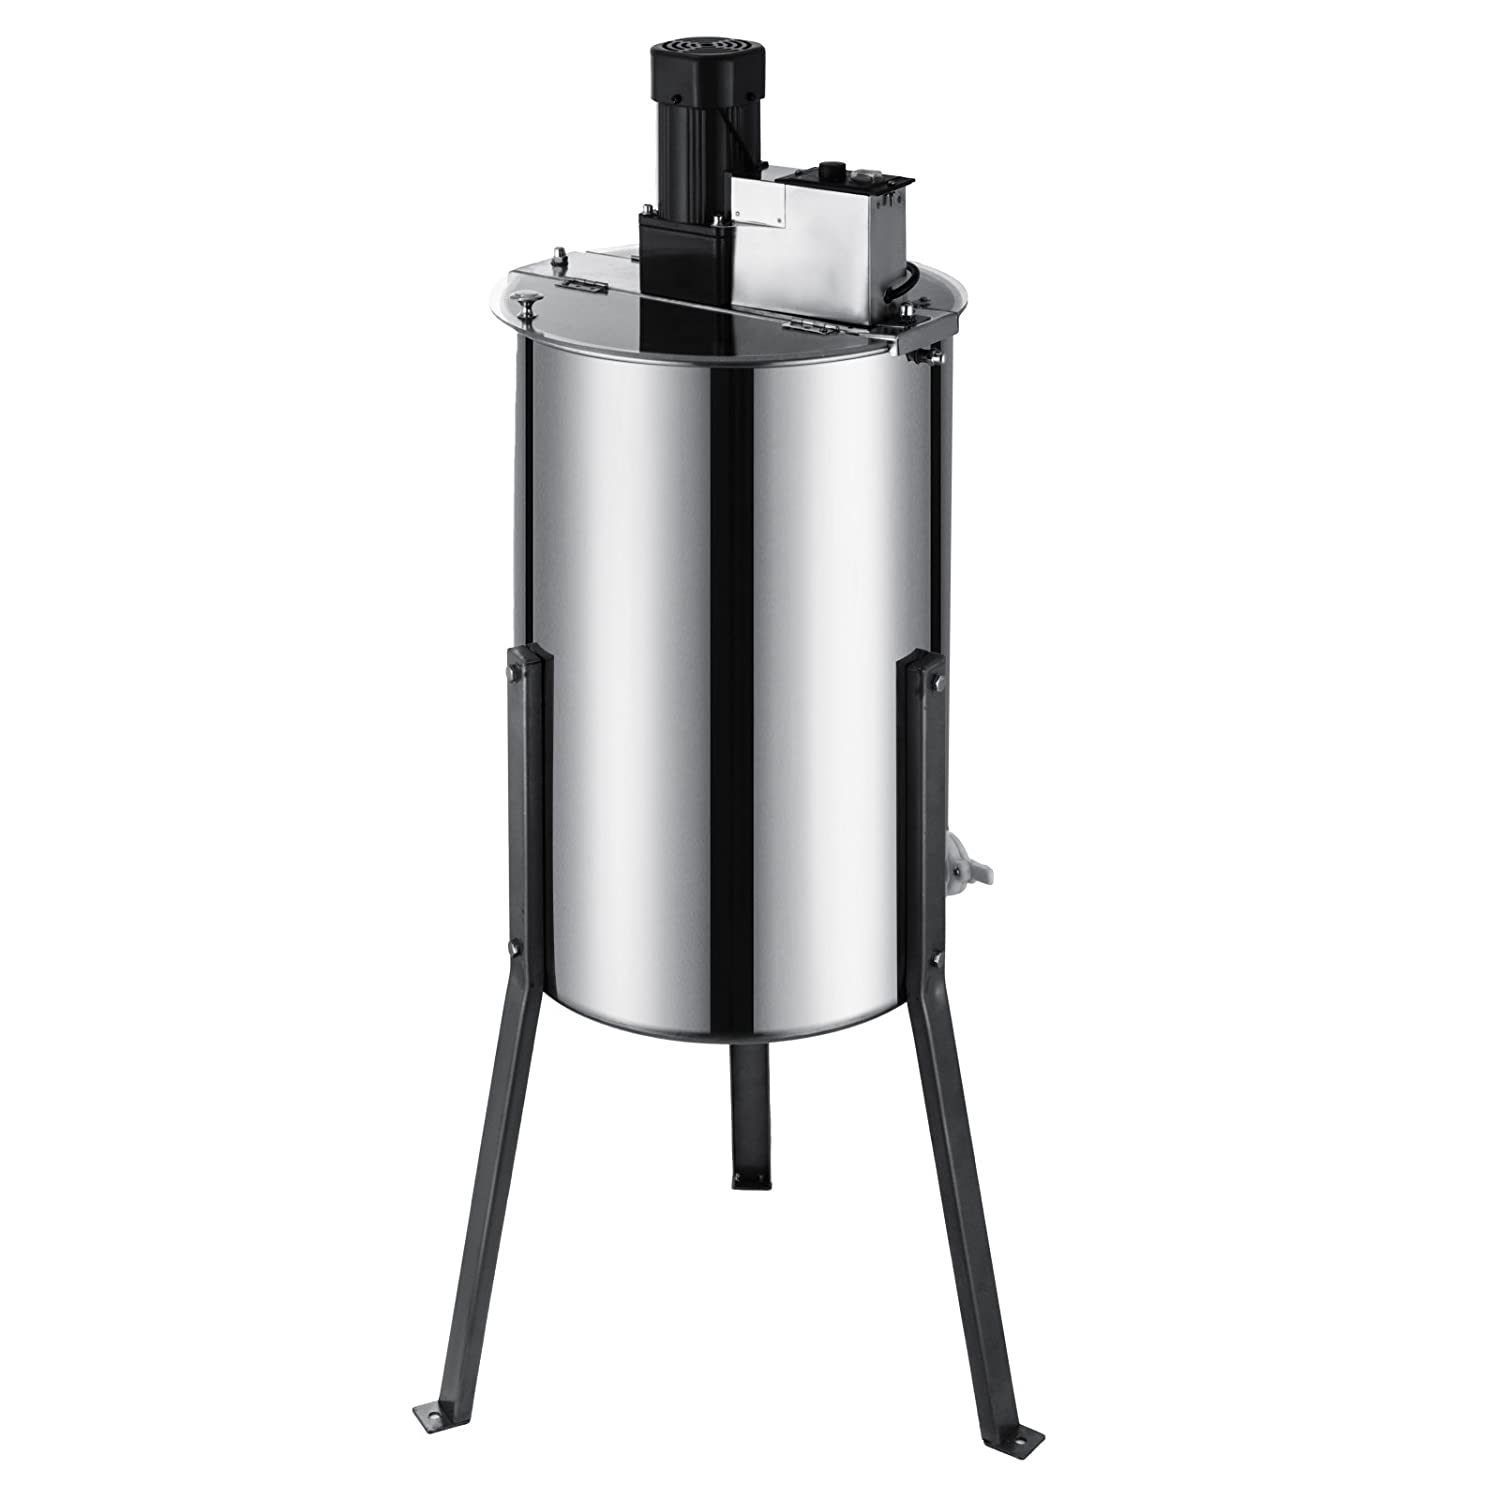 Electric 2 frame Techlifer Electric Honey Extractor Stainless Steel Barrel Height 2 Frame 15  Diameter Honeycomb Drum Spinner Beekeeping Equipment with Strainer (Electric 2 frame)